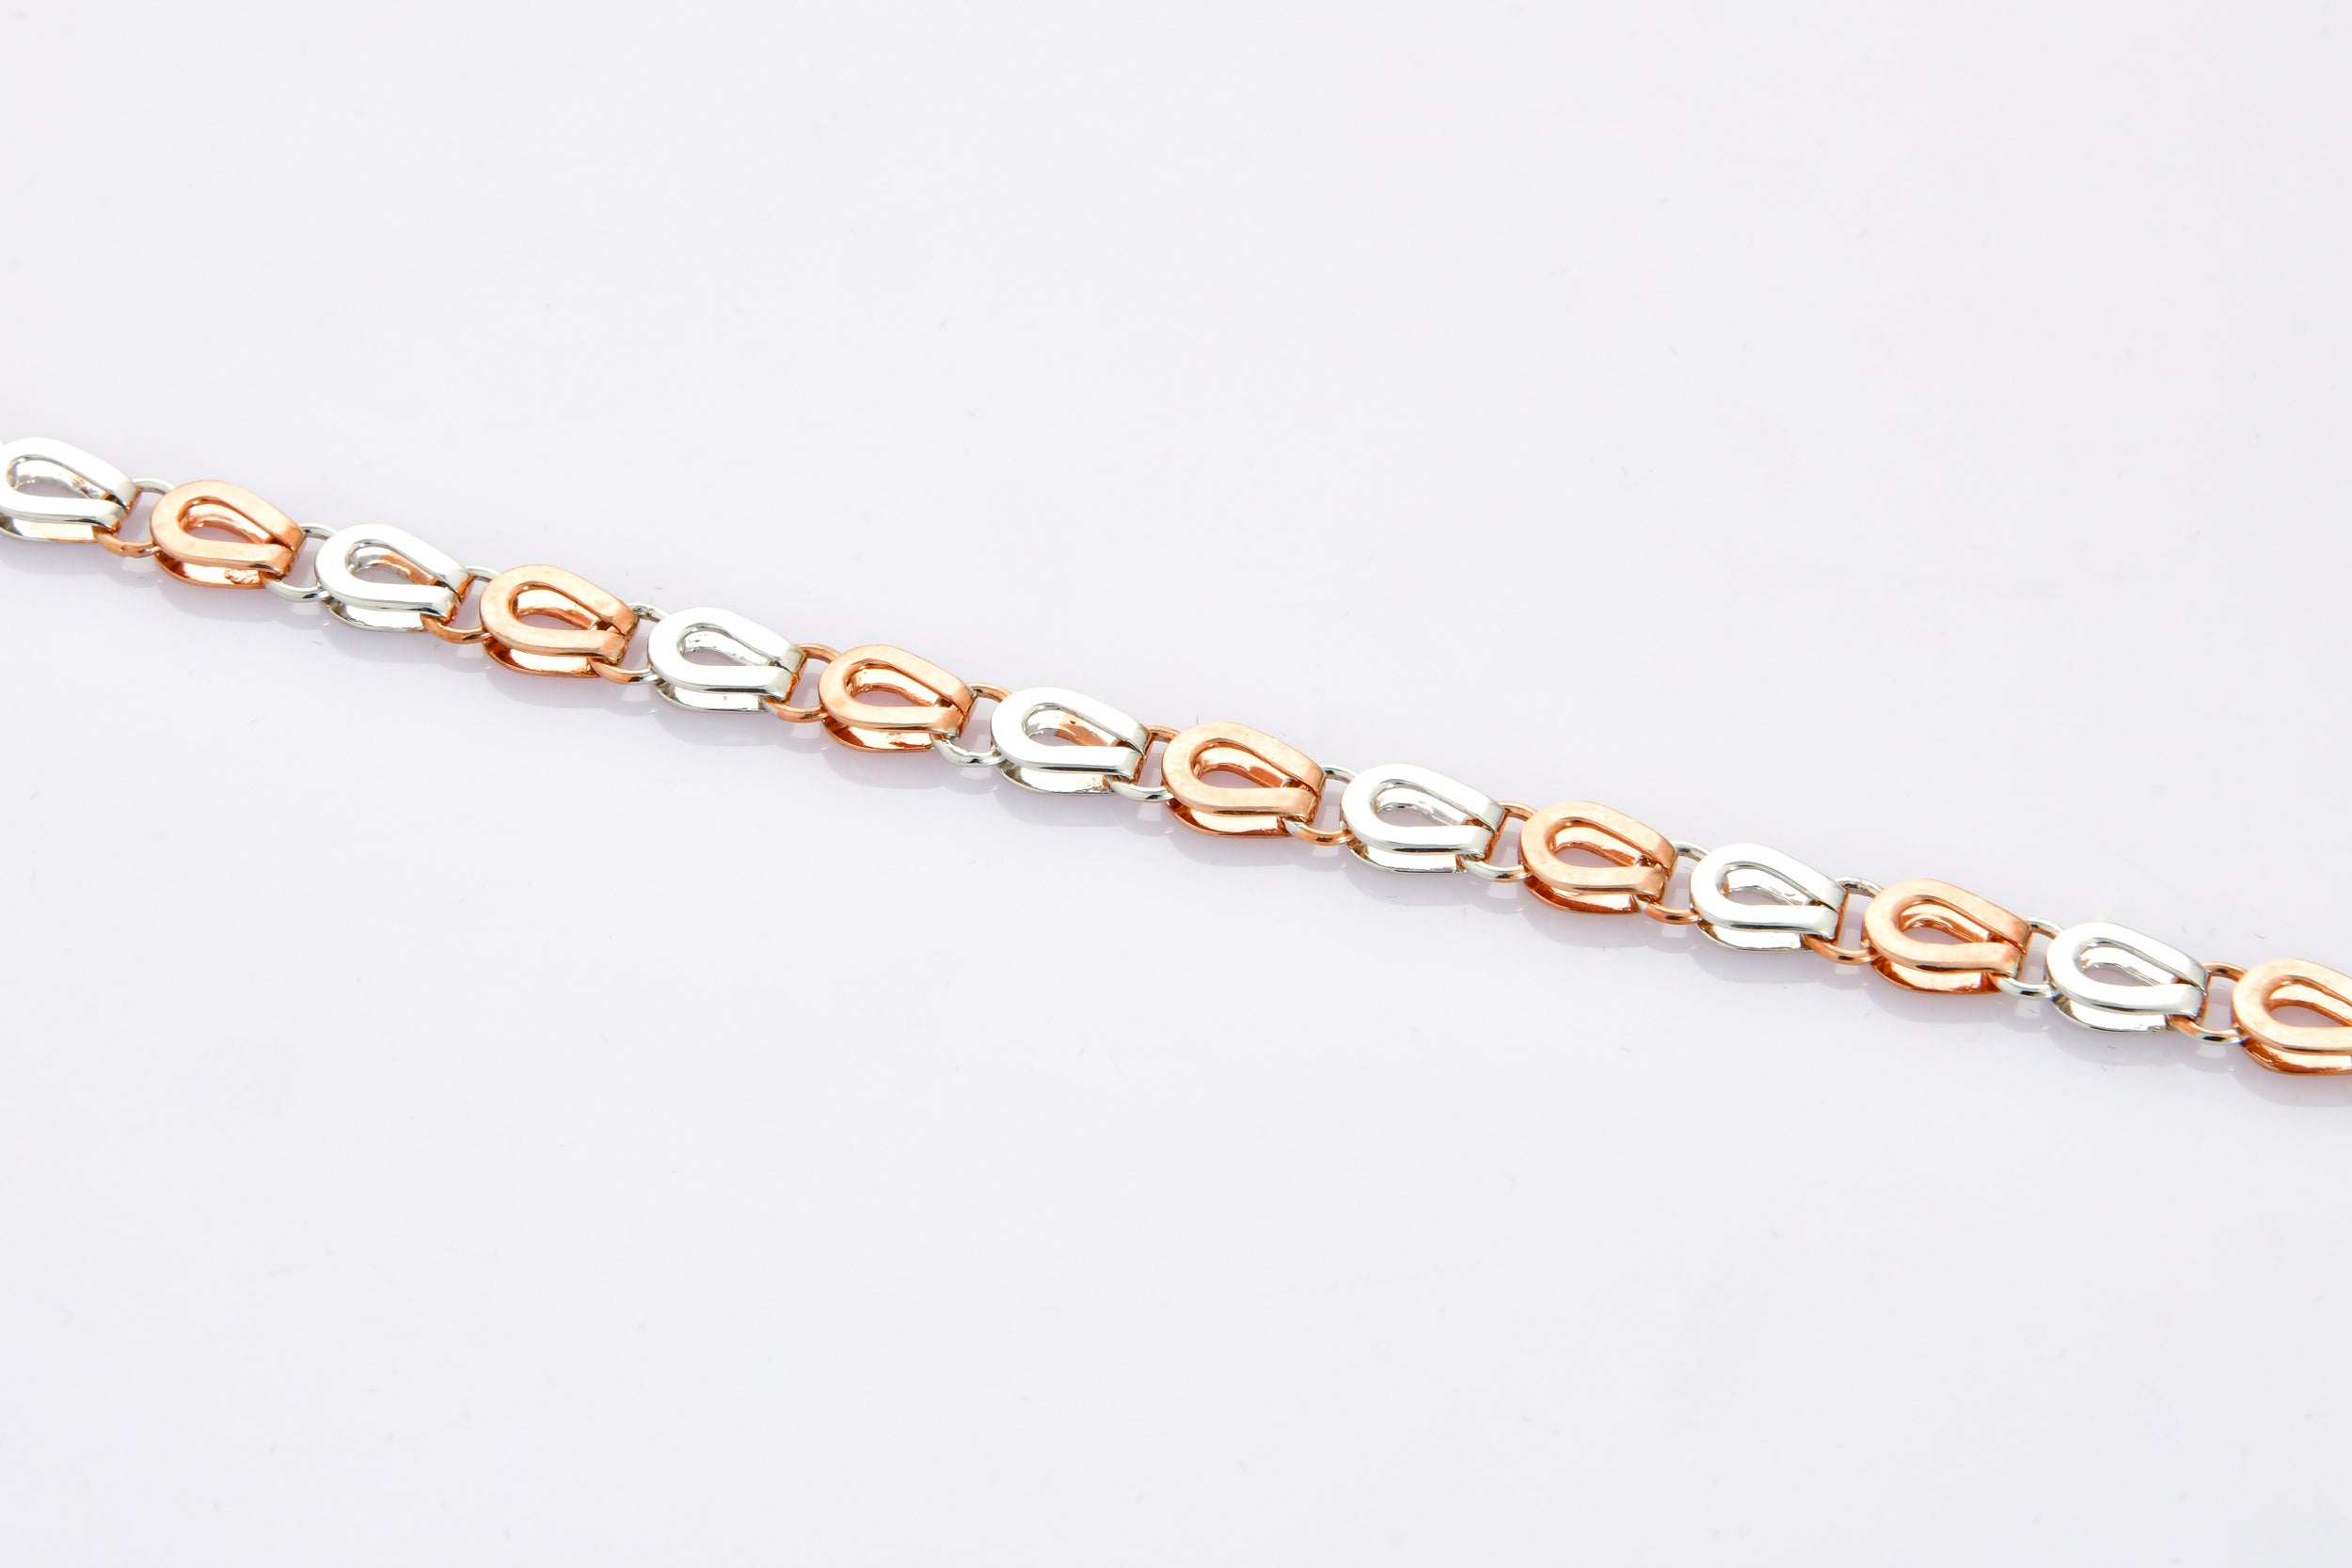 Platinum & Rose Gold Bracelet for Men JL PTB 701